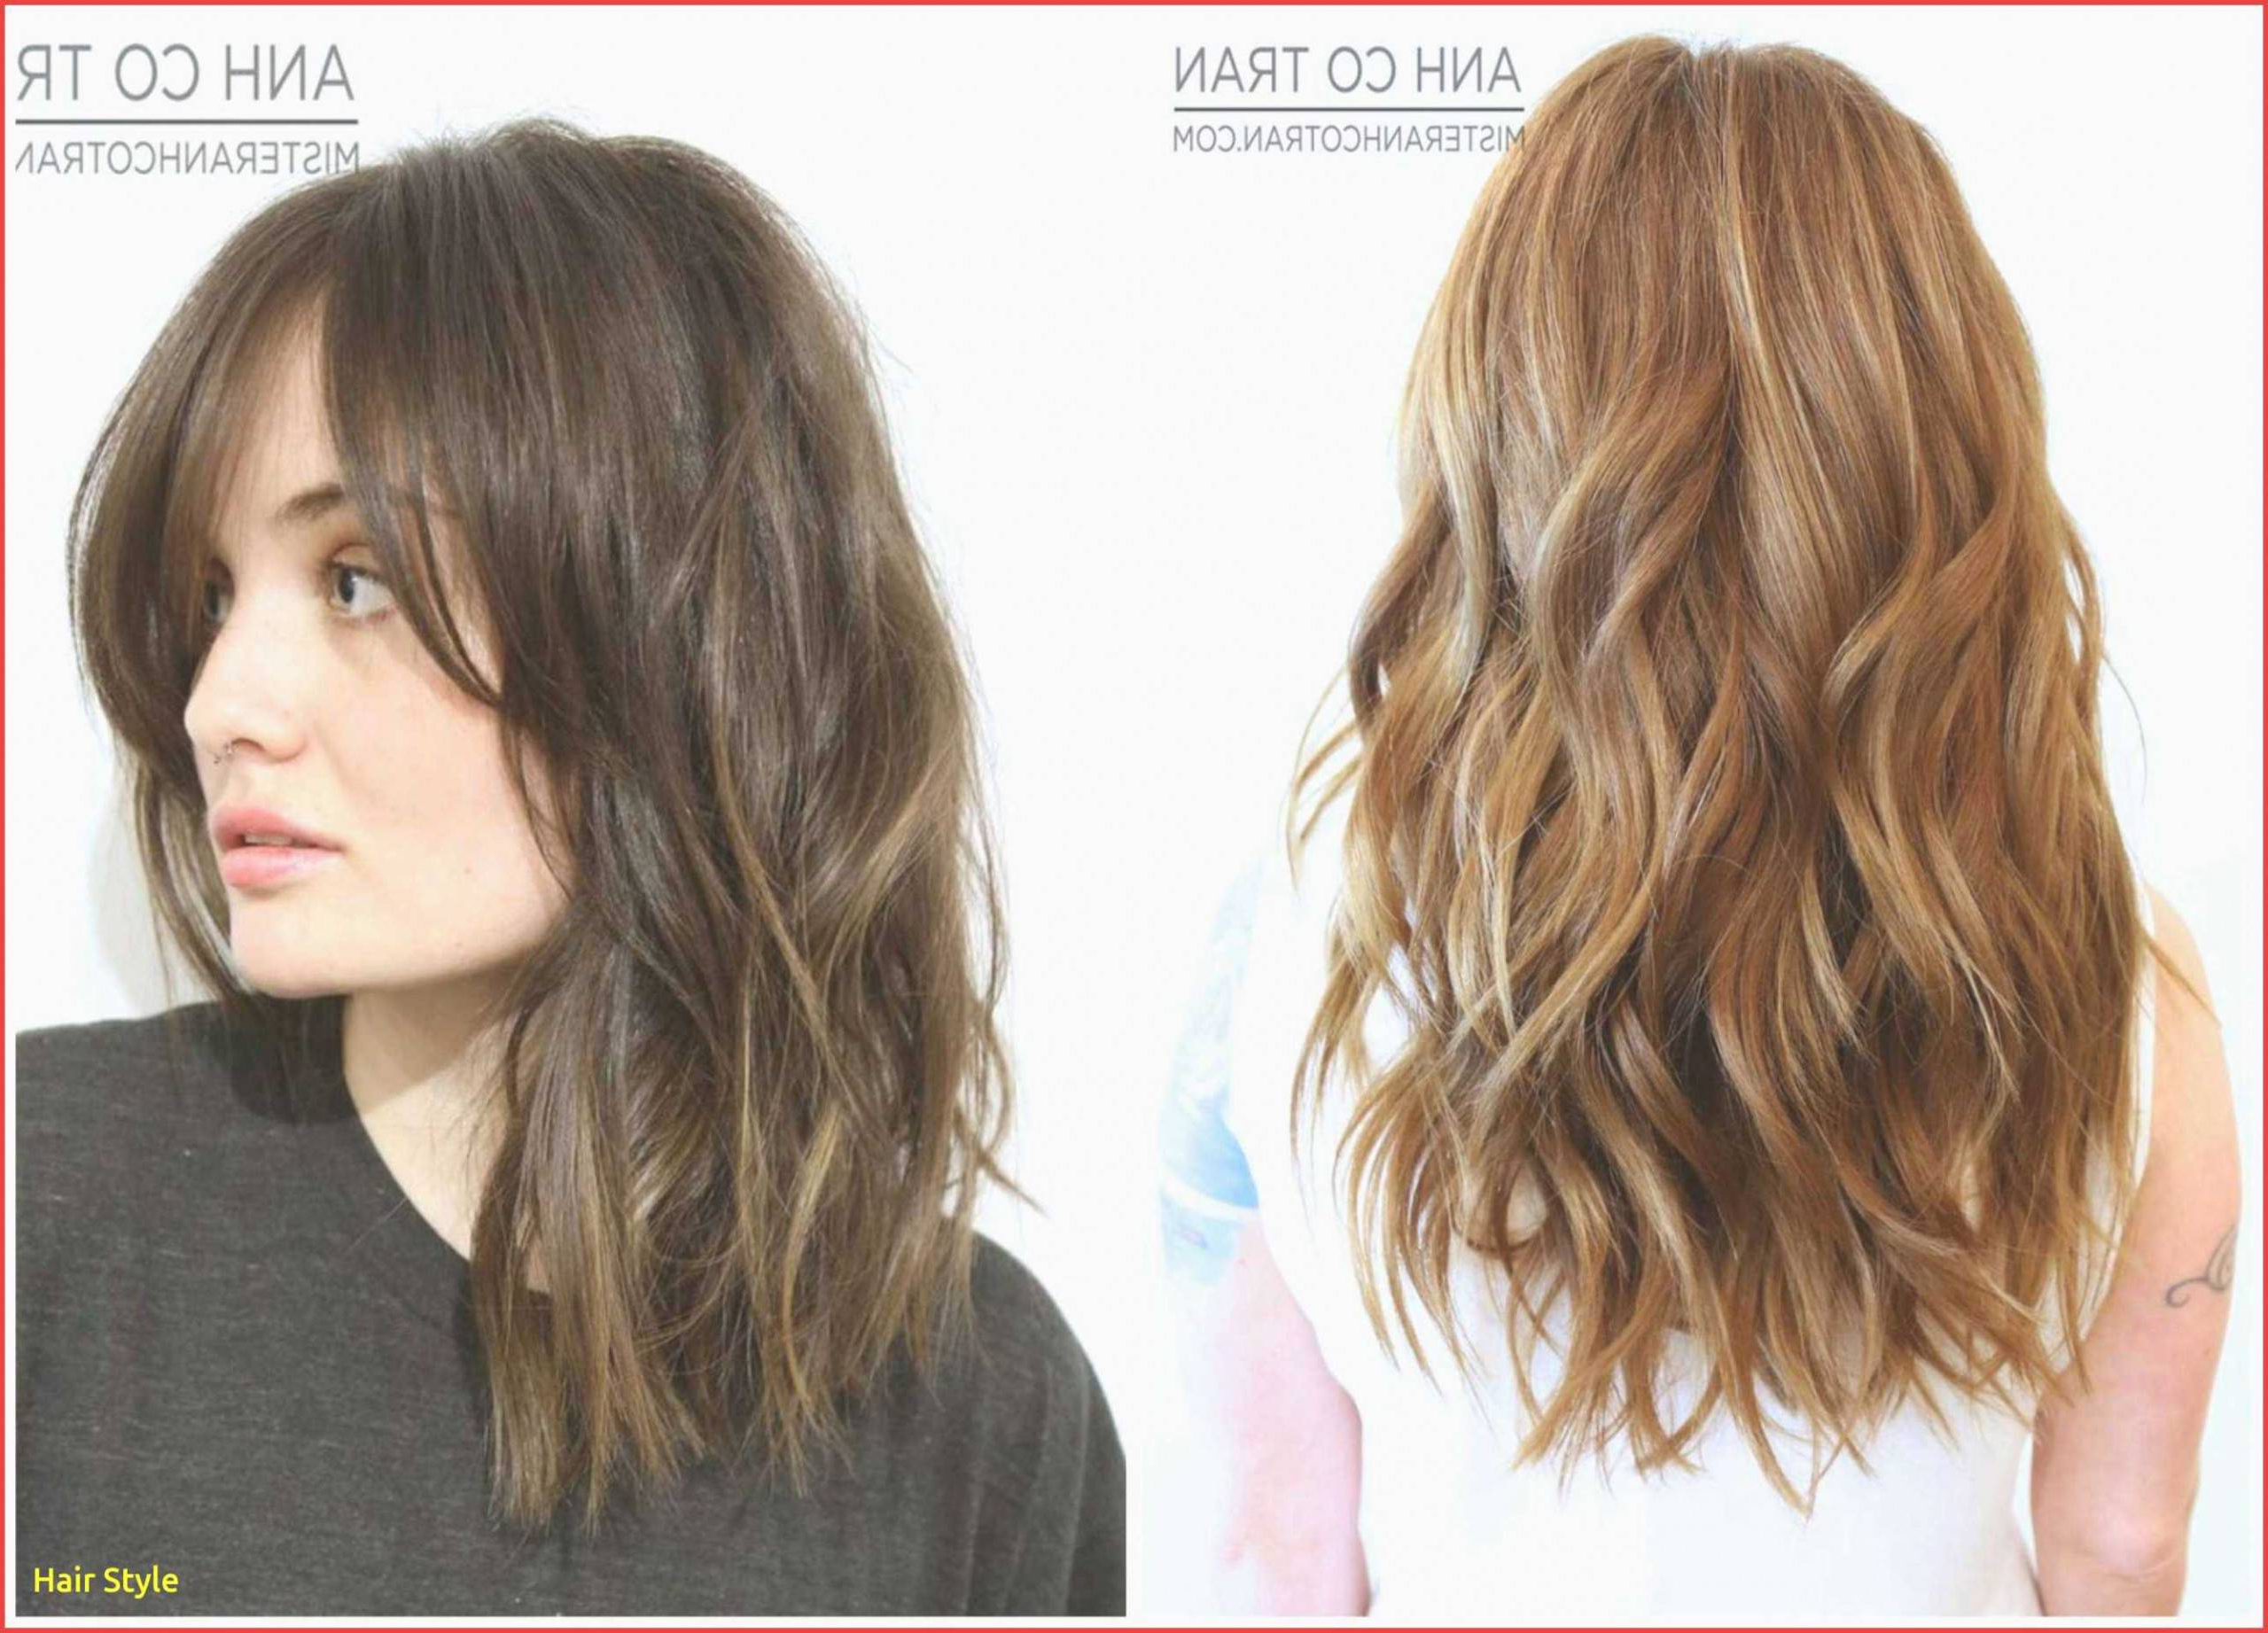 Well Liked Half Long Half Medium Hairstyles For Fine Medium Length Hairstyles New 20 Fresh Hairstyles For Half Long (View 19 of 20)